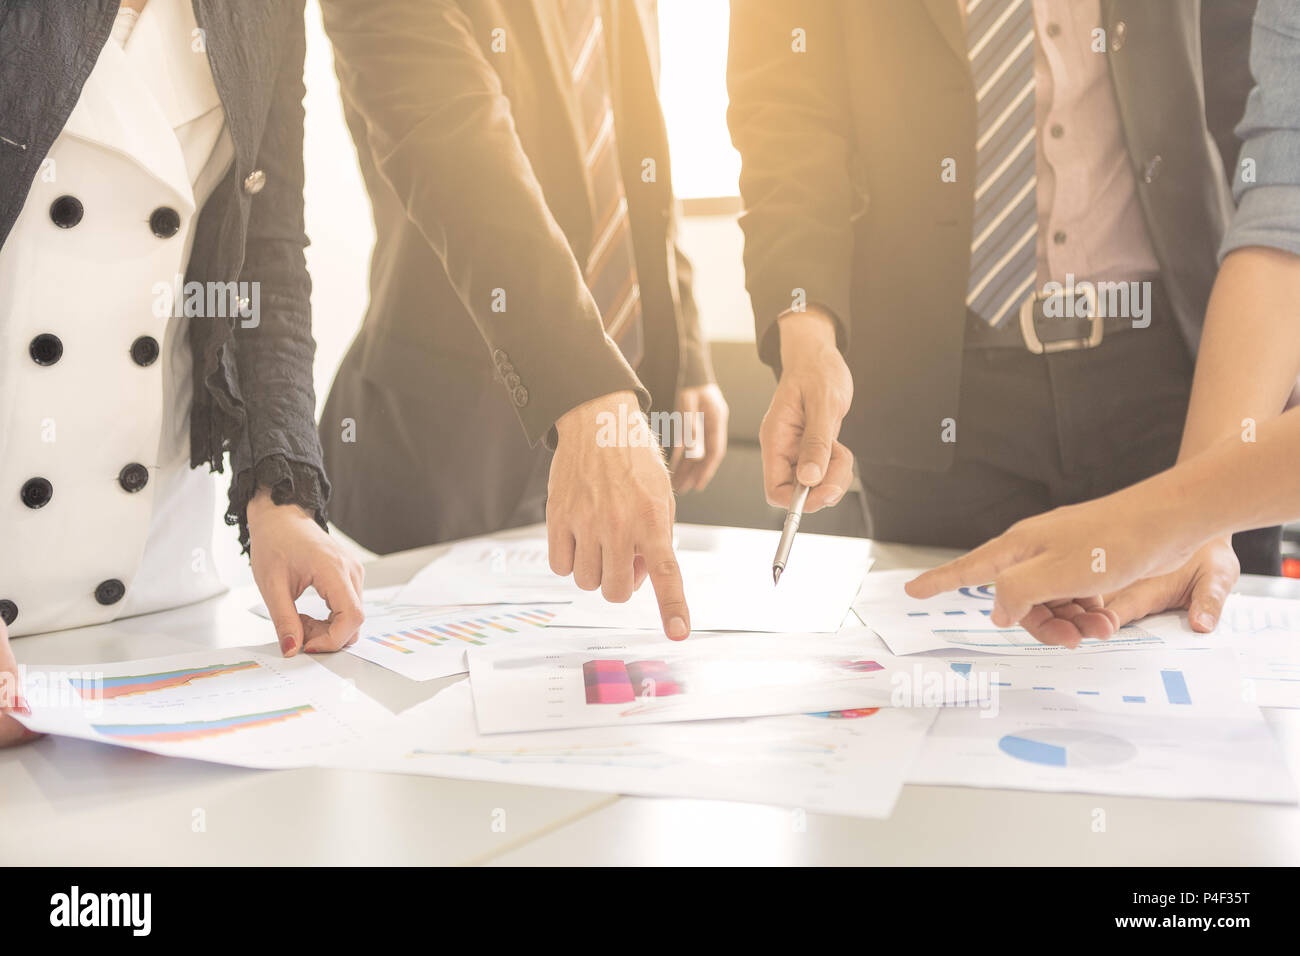 Businessman and woman are brainstorming on to creative new business idea as teamwork concept. - Stock Image